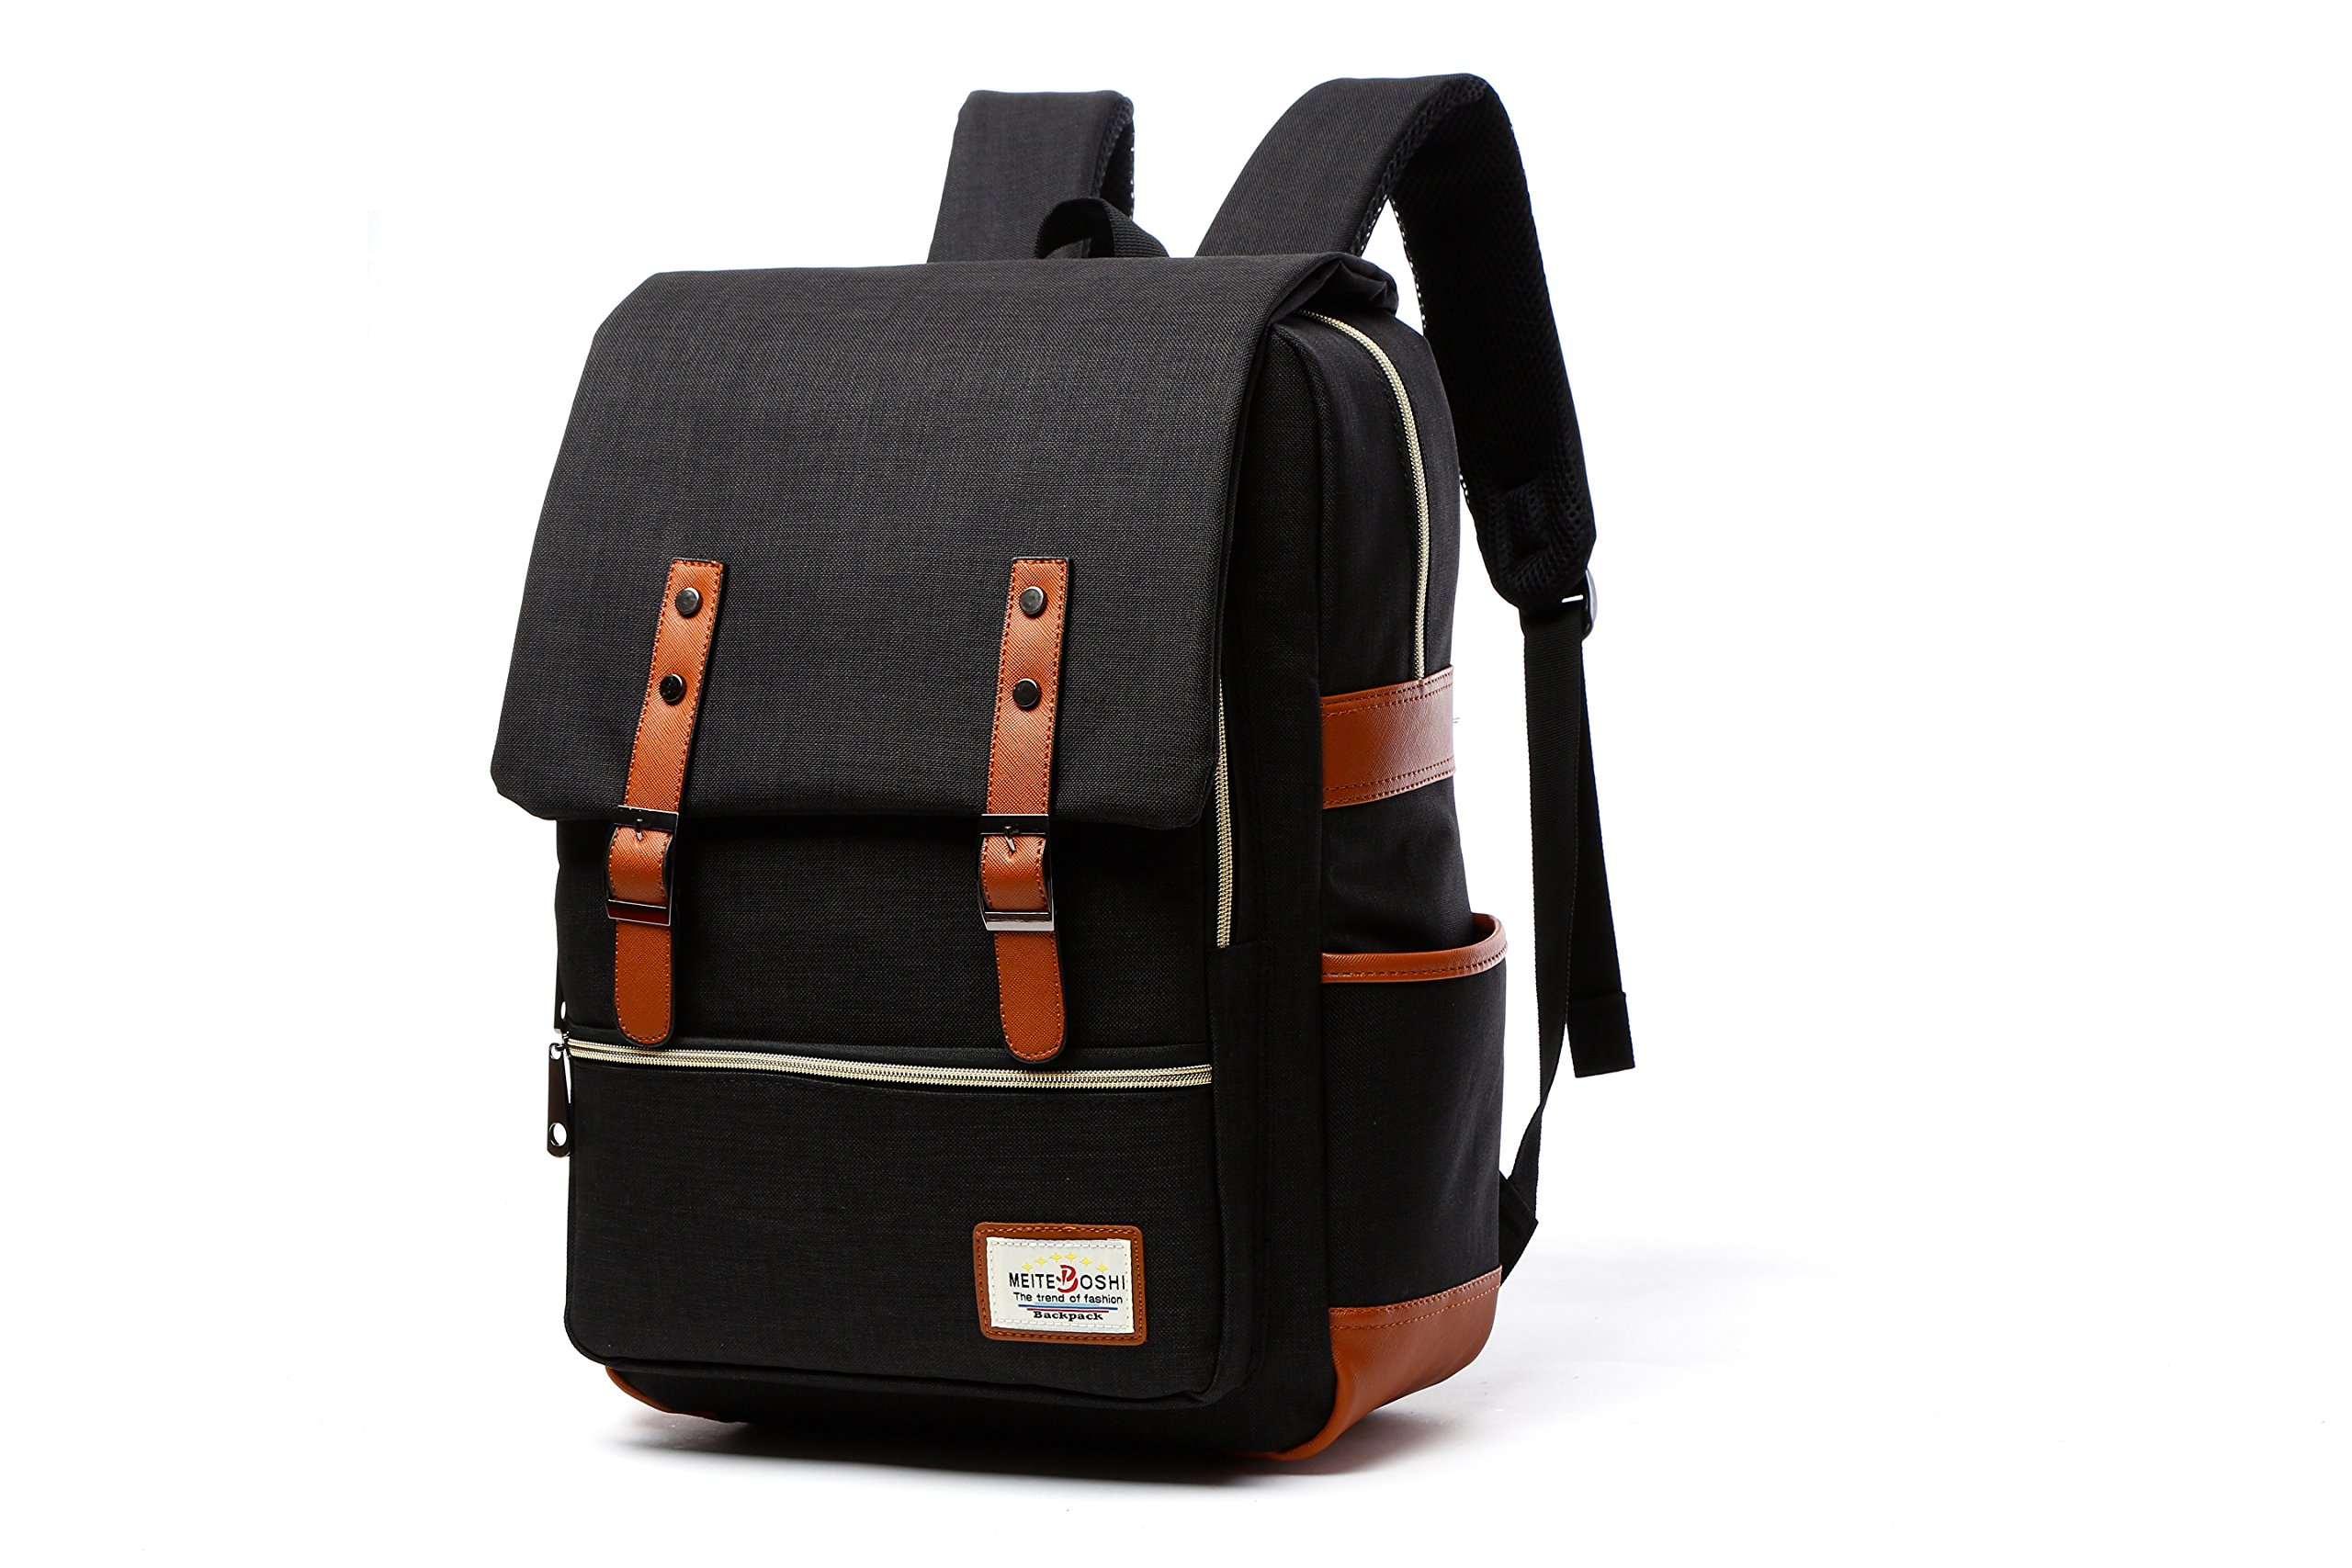 School Bags for Boys High School, KESENKE Bookbag, Canvas Laptop College School Backpacks (Black) by KESENKE (Image #1)